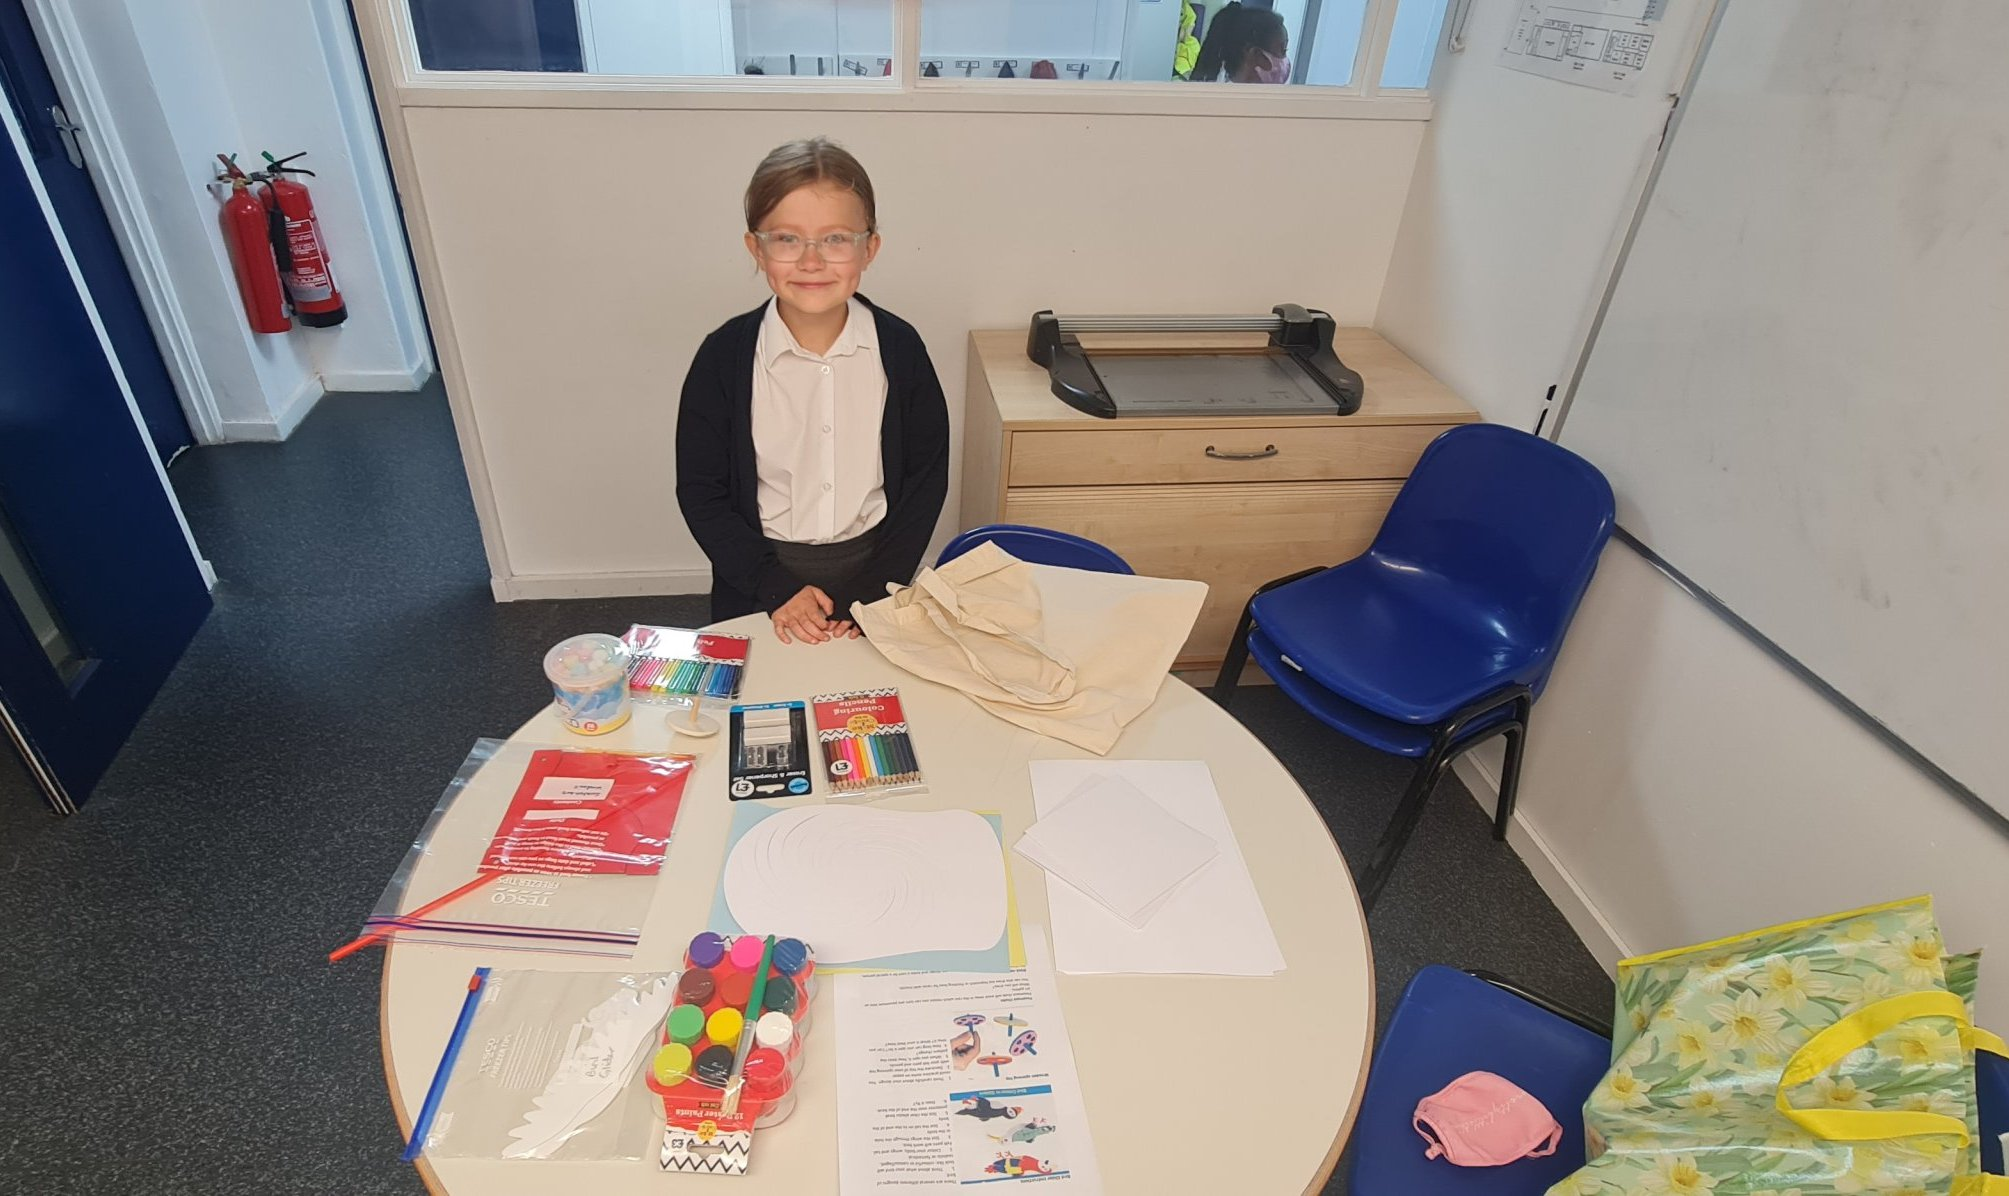 Smiling child stood behind a school desk covered in art and craft supplies including paint and colouring pencils